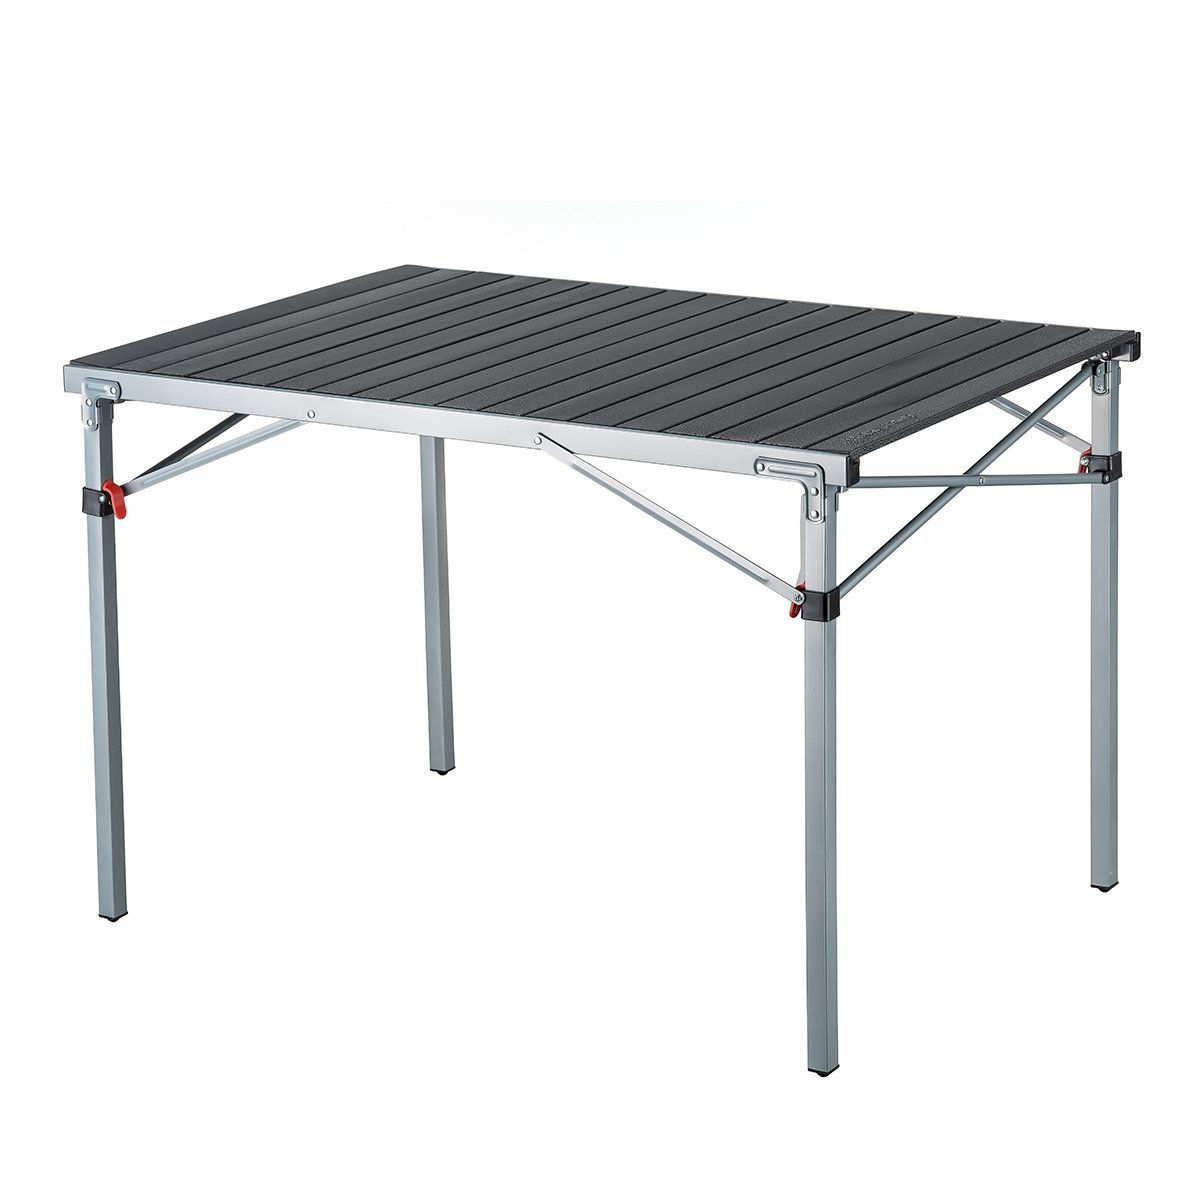 KingCamp Steel Frame Fold Camp Table Aluminum Alloy Roll up top Light Weight Portable Stable Collapsible Foldable with... by Kingcamp